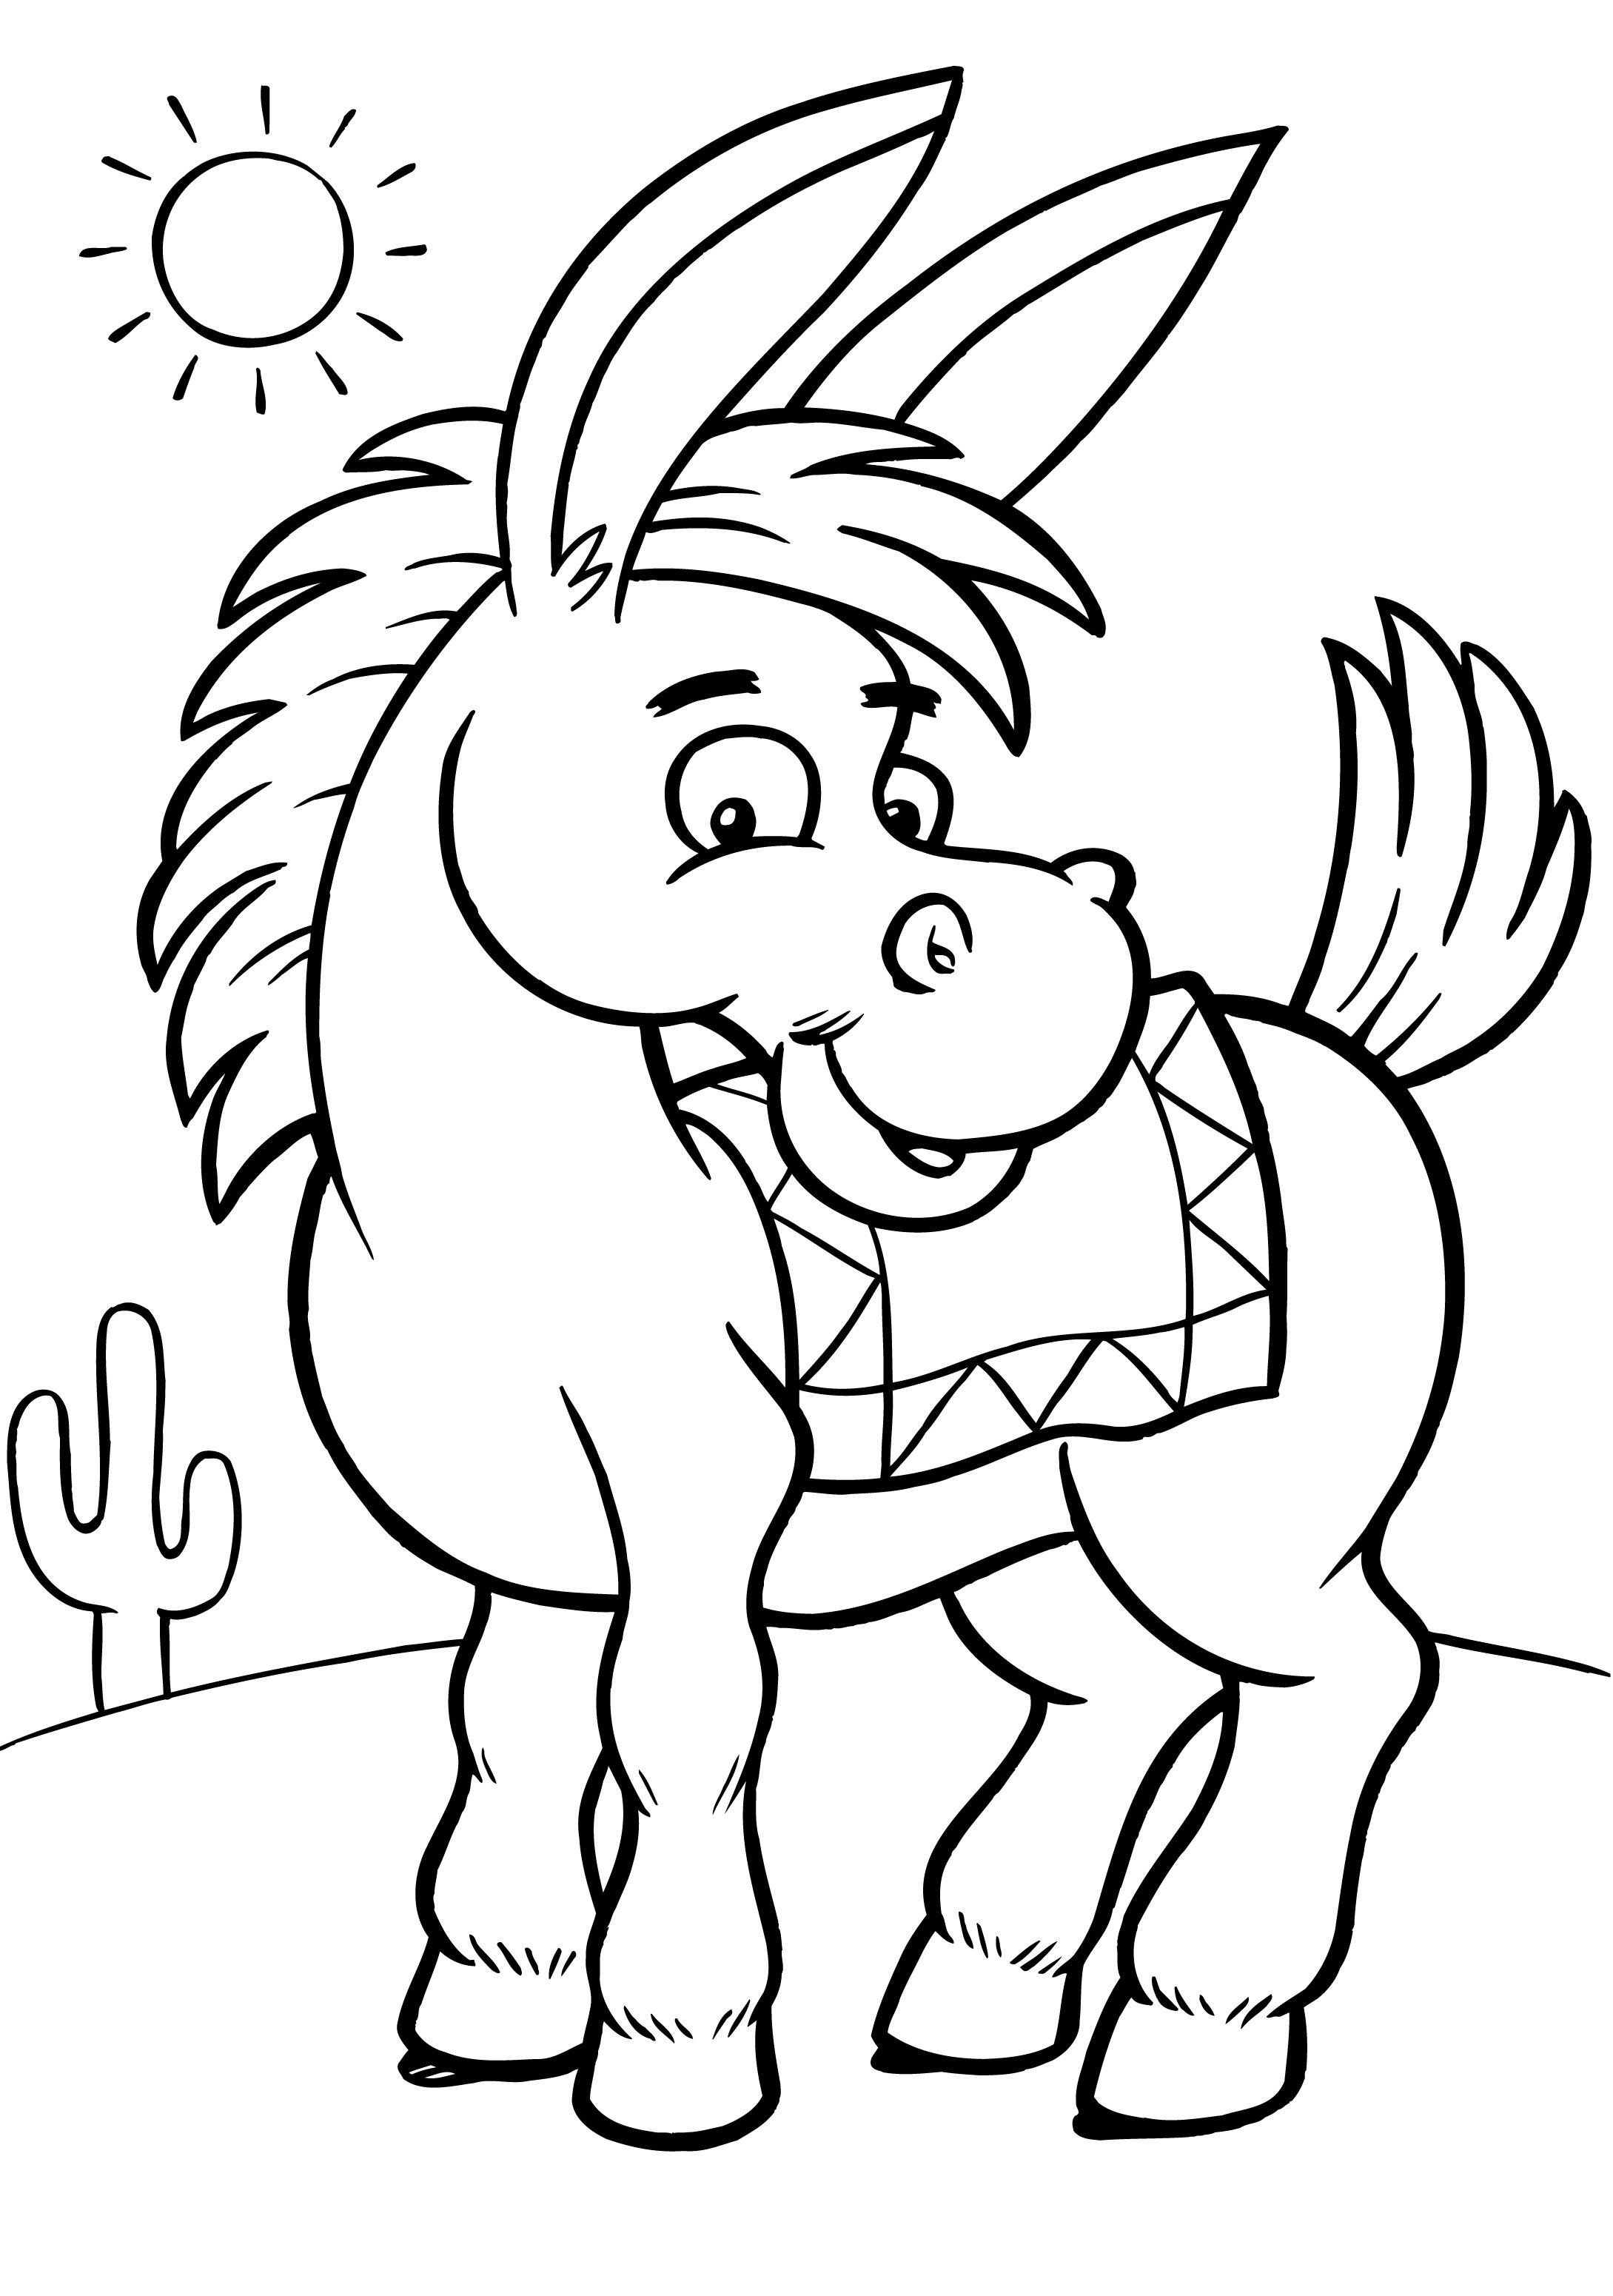 Best ideas about Free Coloring Sheets Printable . Save or Pin Free Printable Donkey Coloring Pages For Kids Now.